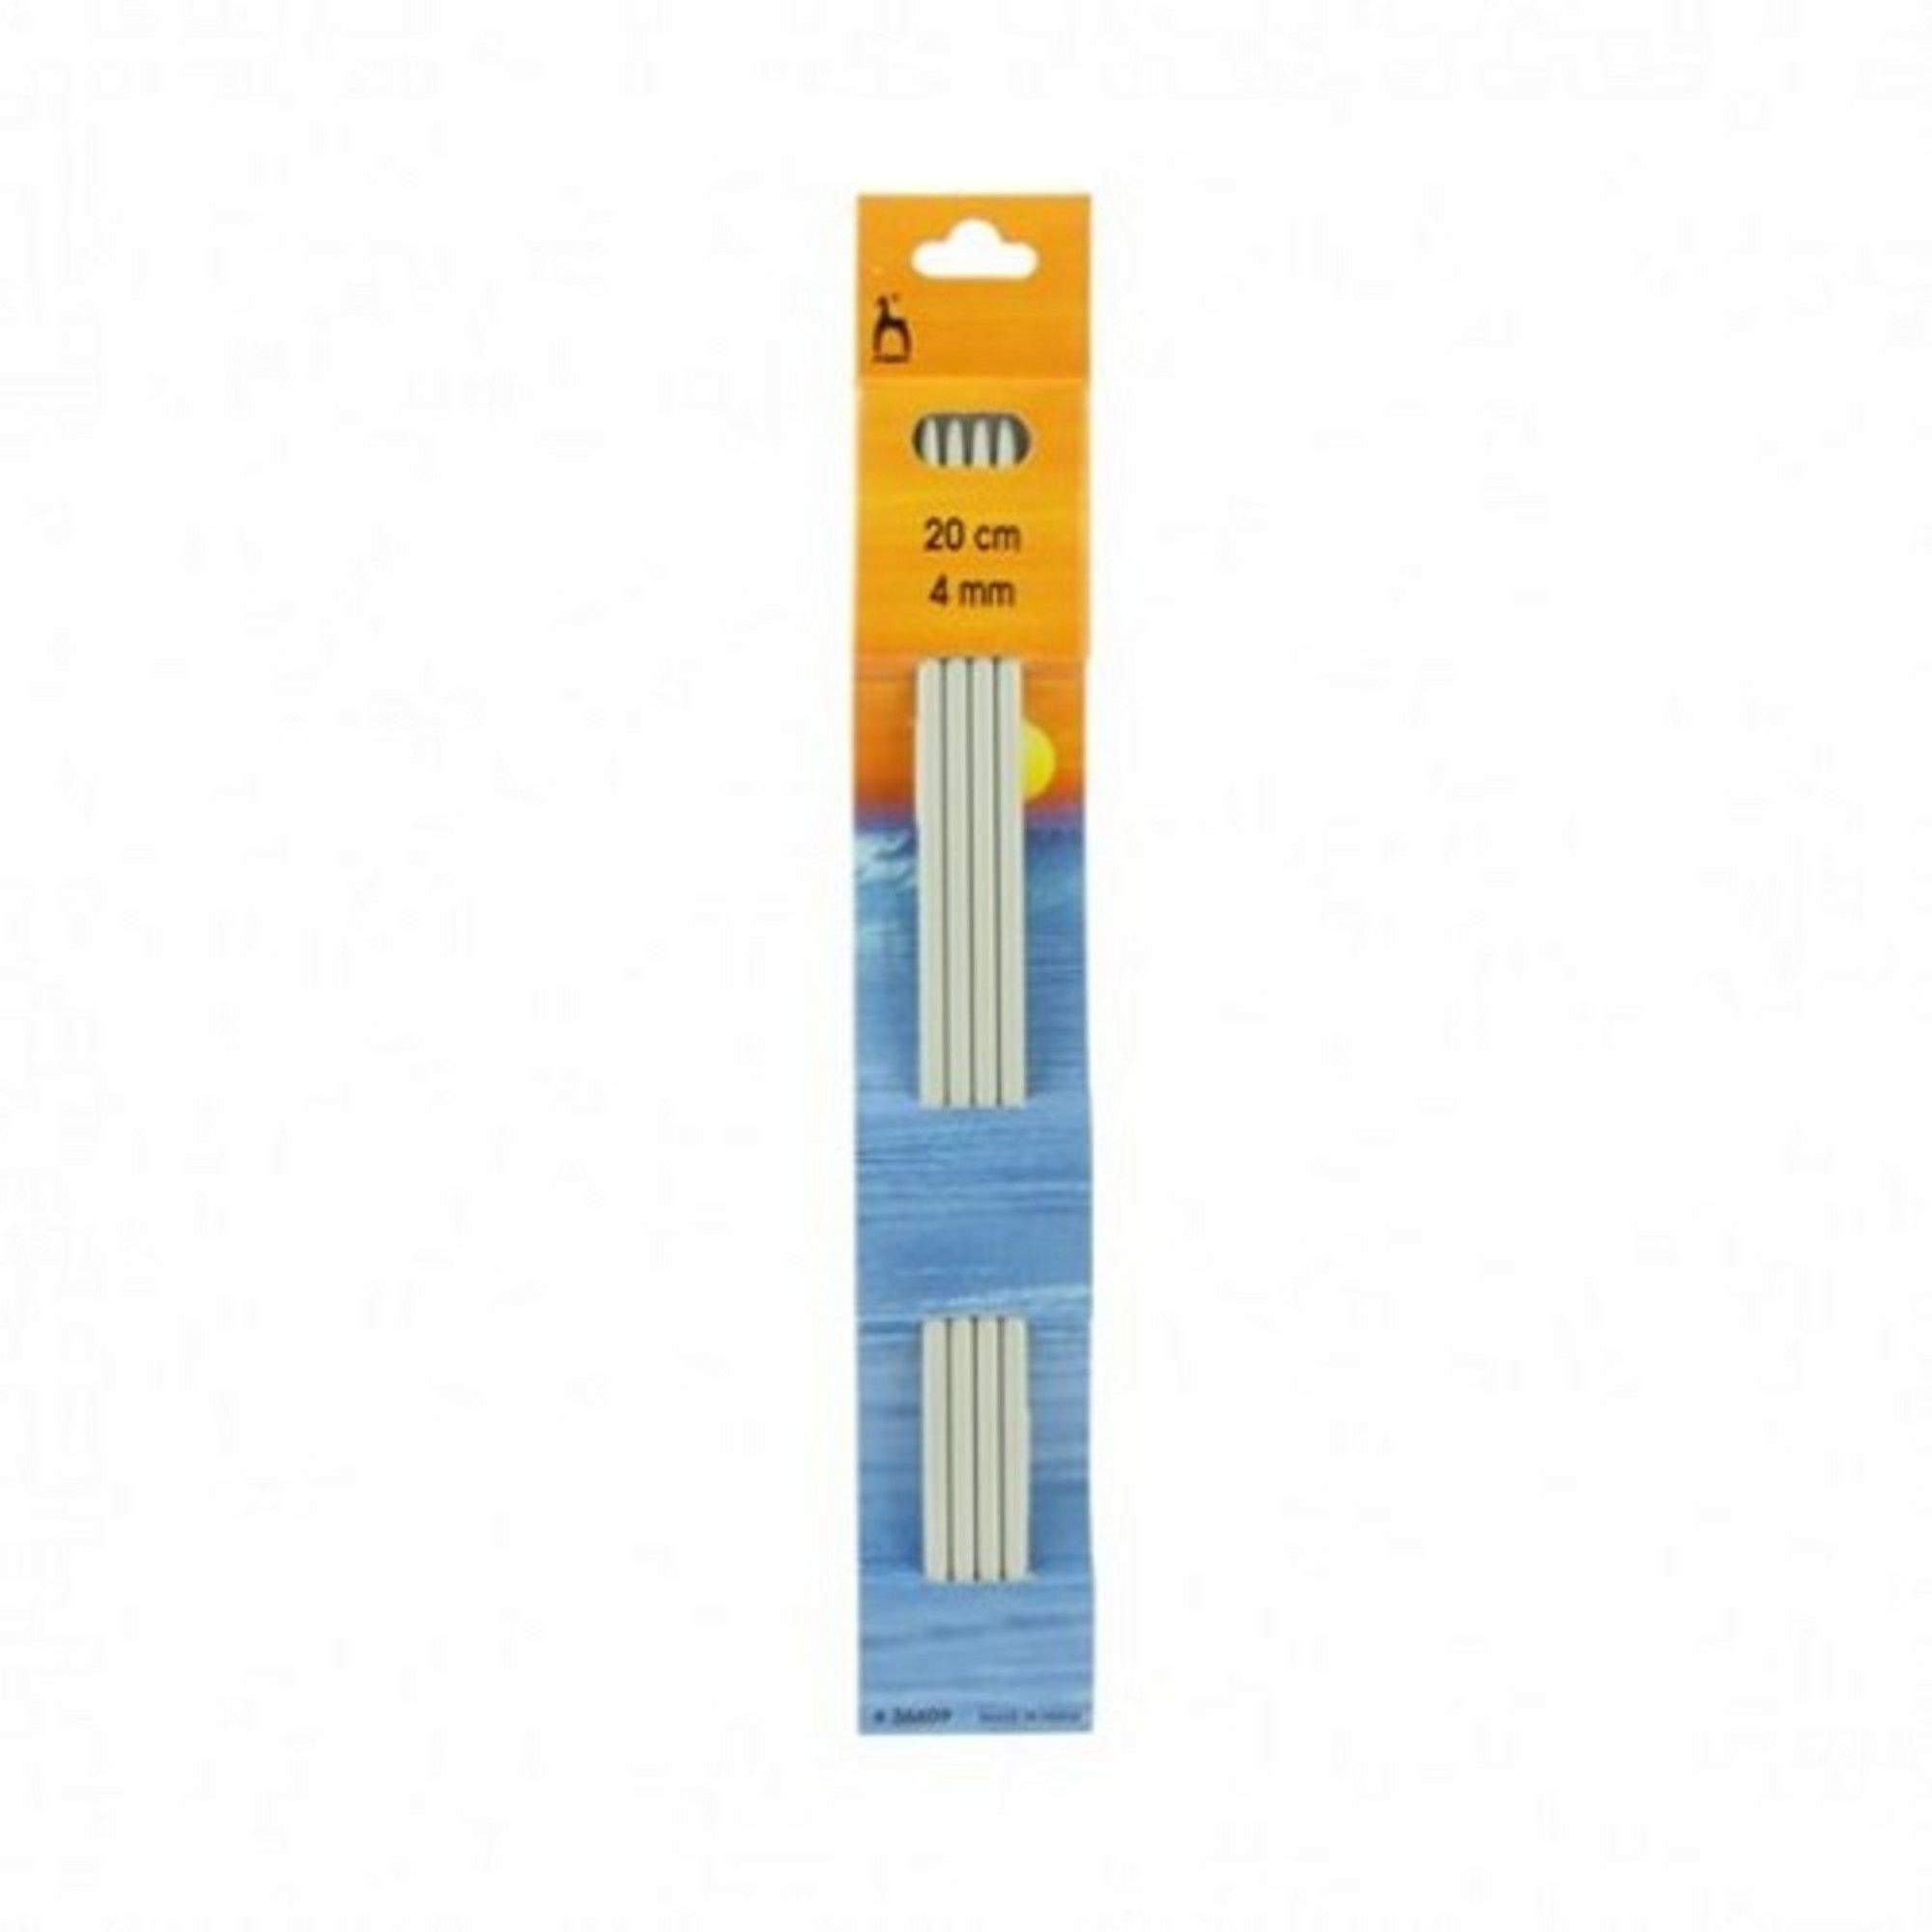 4 Pack of Knitting Needles 20cm x 4mm